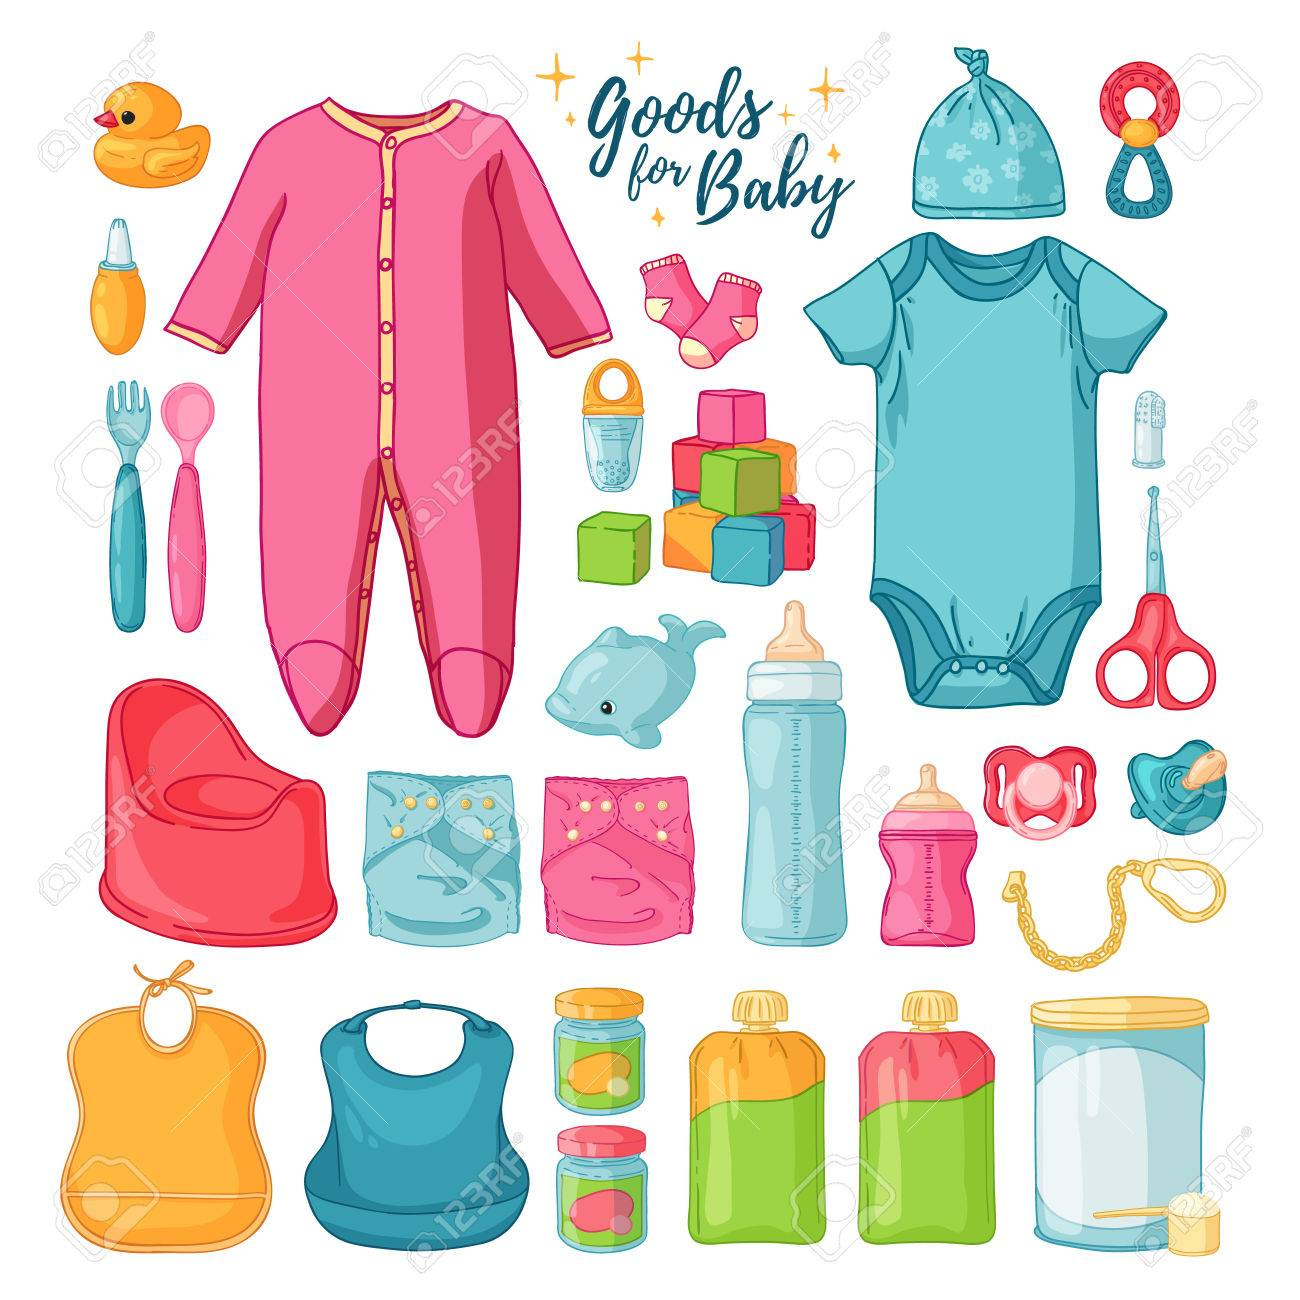 Image result for baby stuff